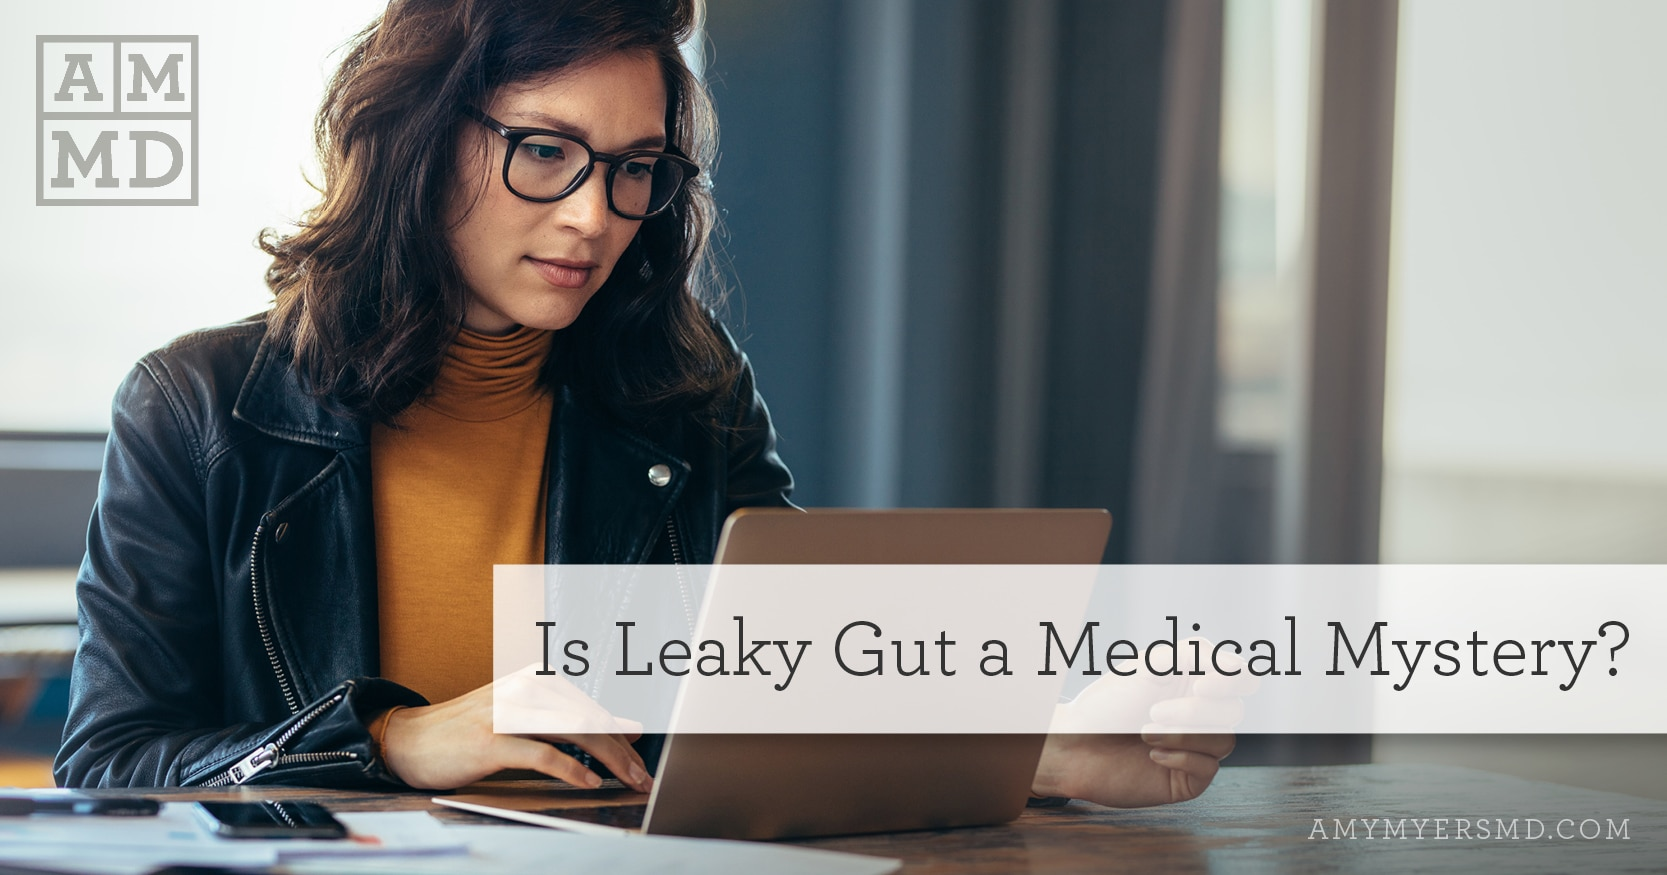 leaky gut a medical mystery